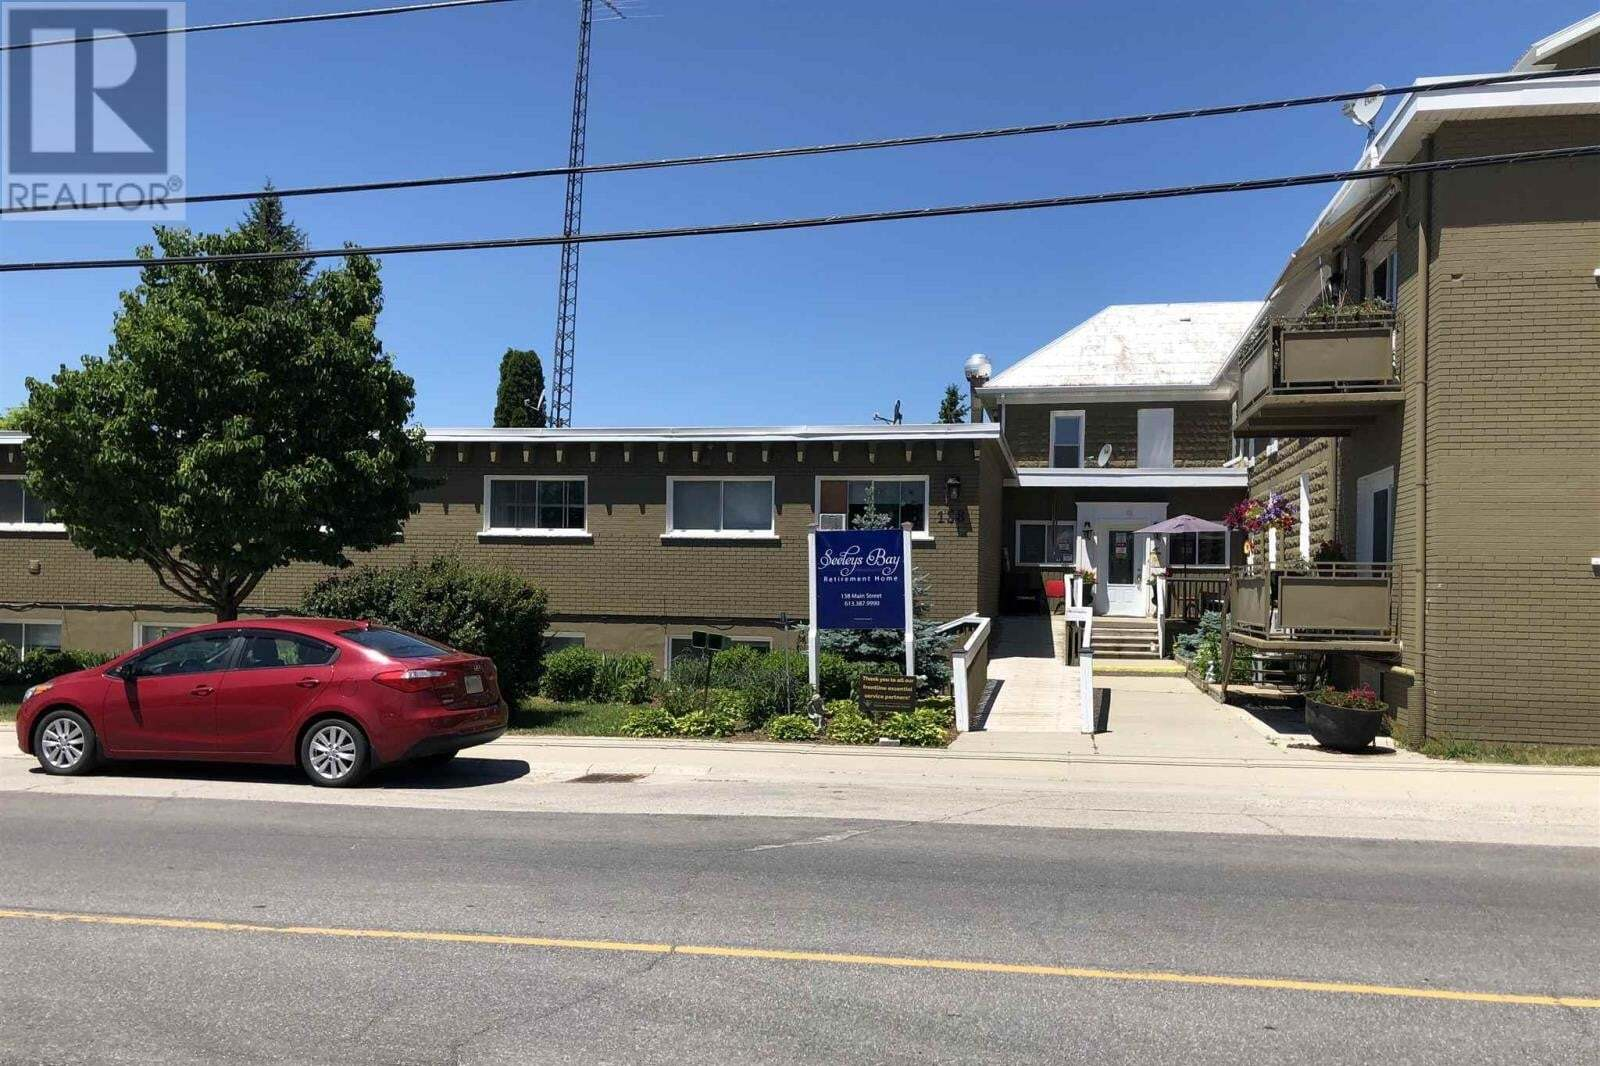 Residential property for sale at 138 Main St Seeley's Bay Ontario - MLS: K20003207